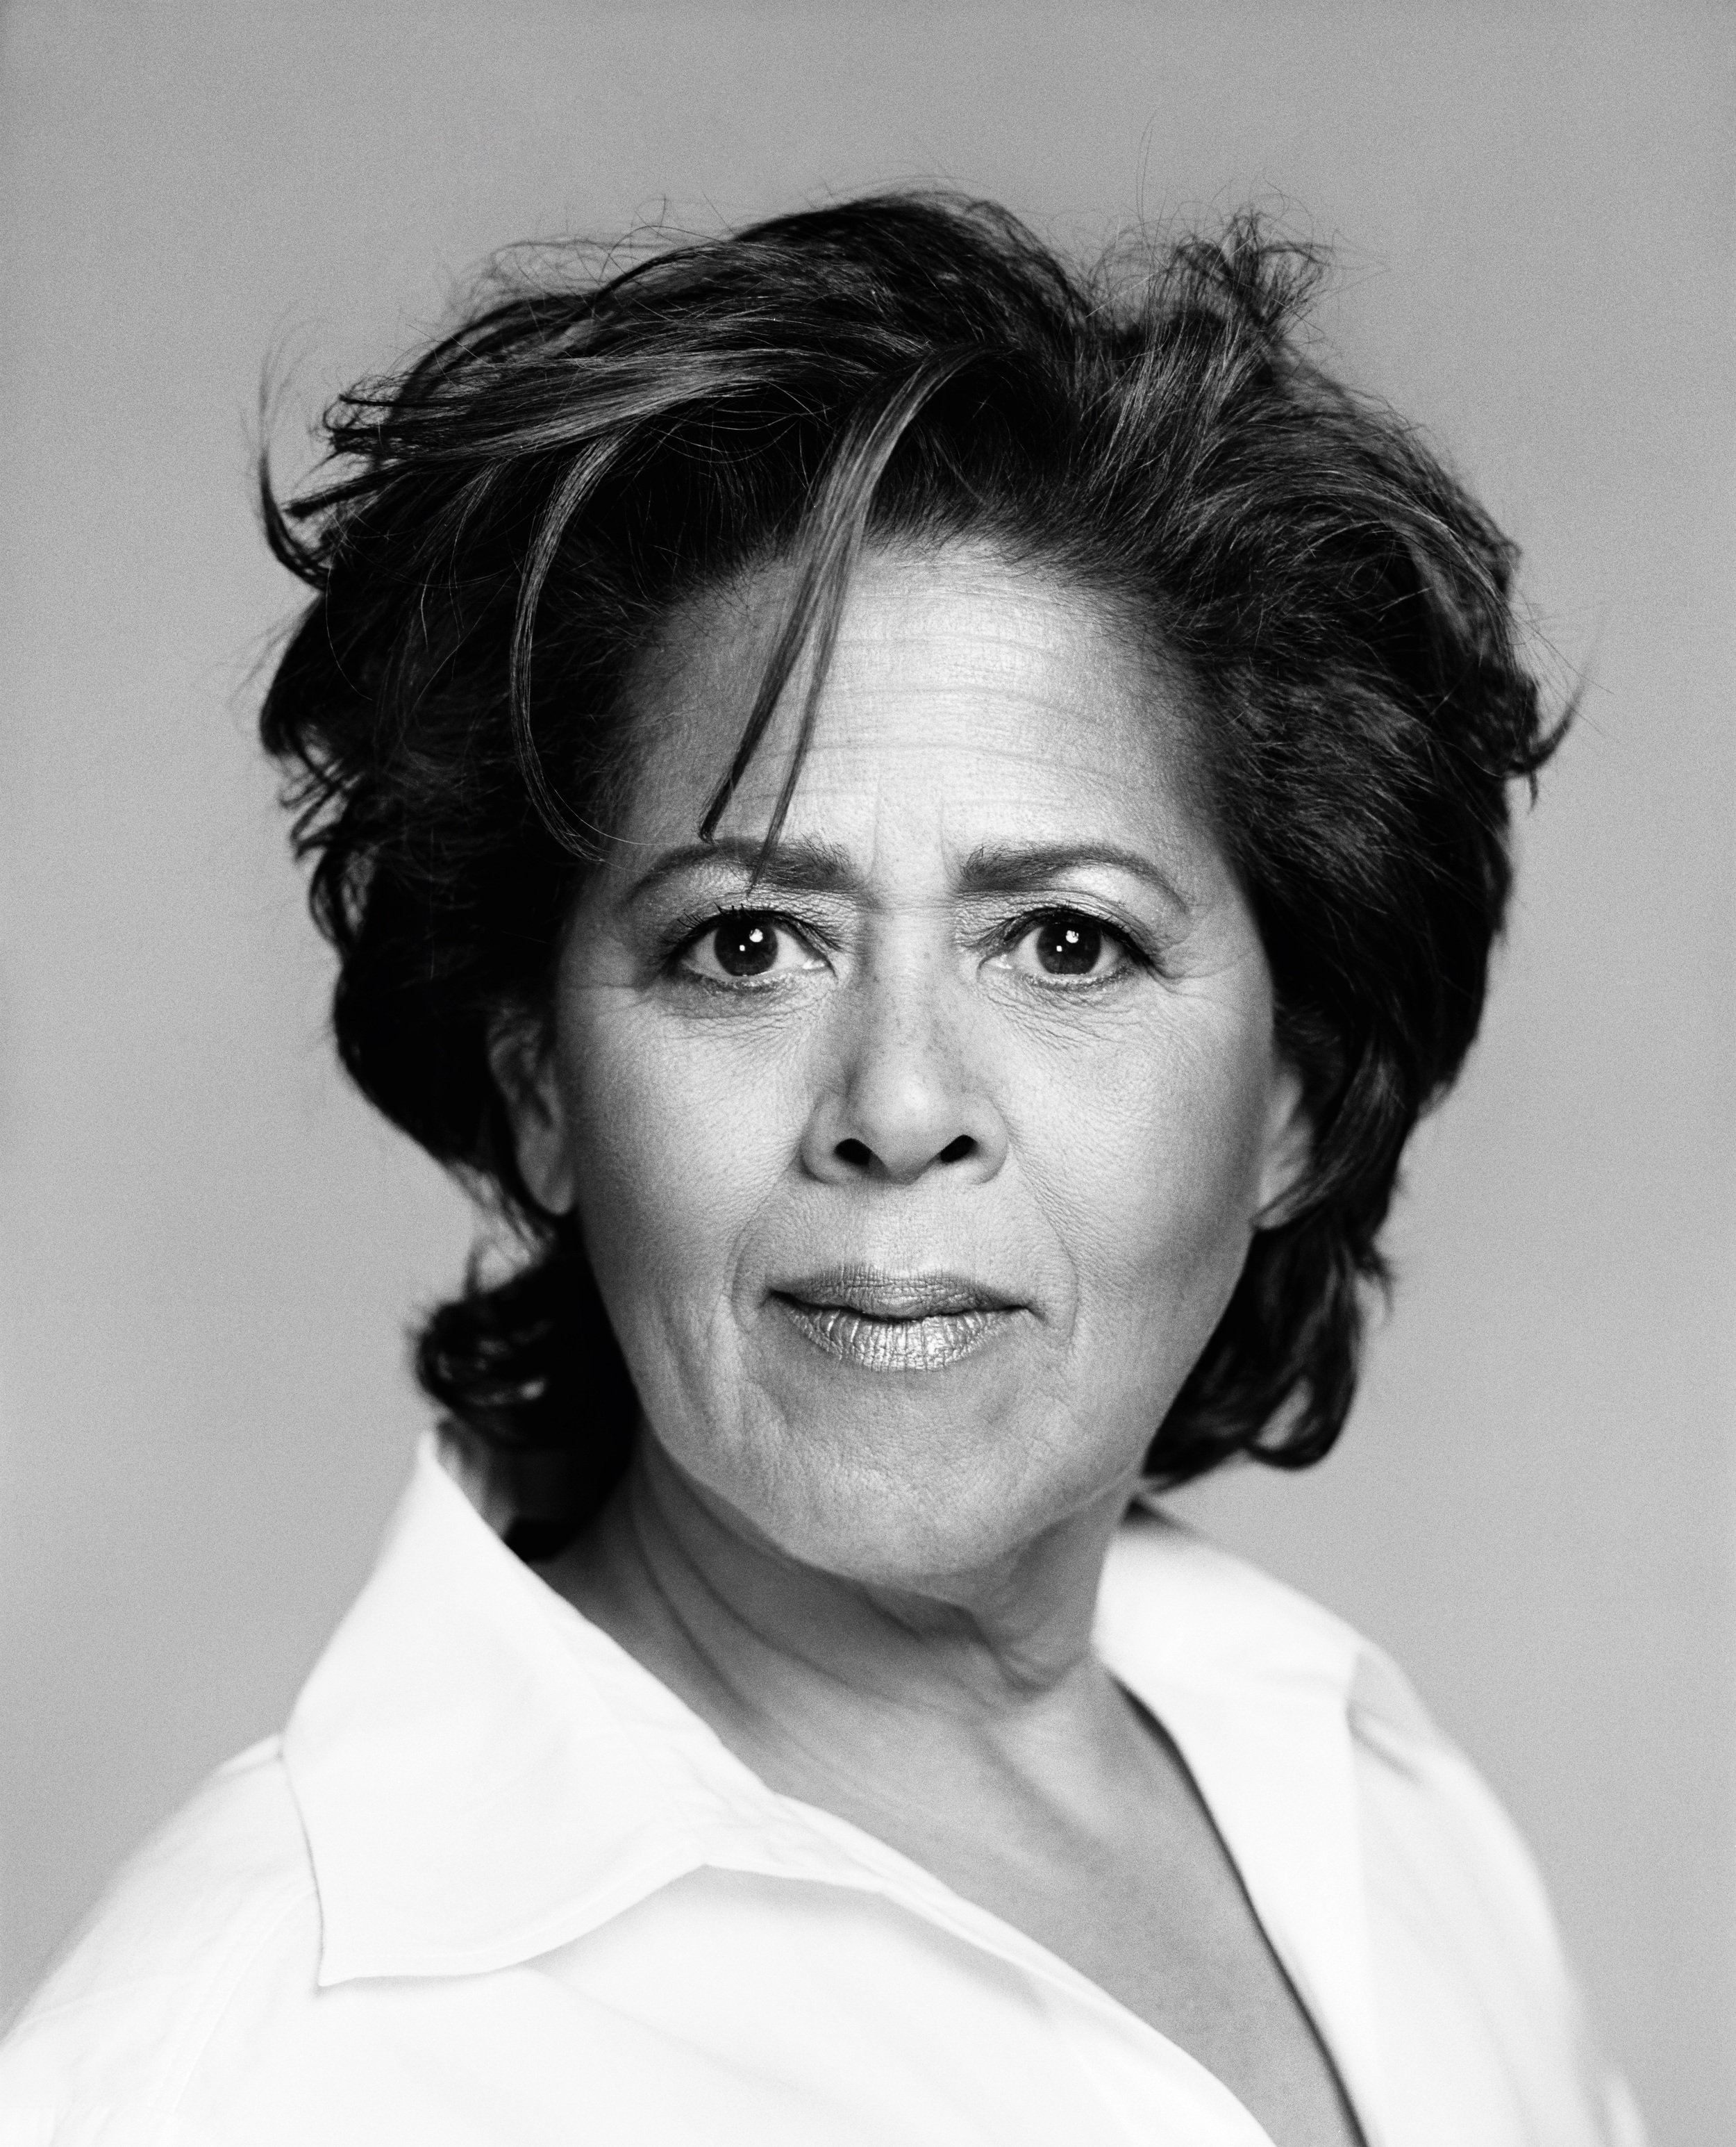 Using her signature form of theater and through interviews with more than two hundred individuals, Anna Deavere Smith examines the lack of opportunity and resources for many young people living in poverty, and how these circumstances often lead them into the criminal justice system.